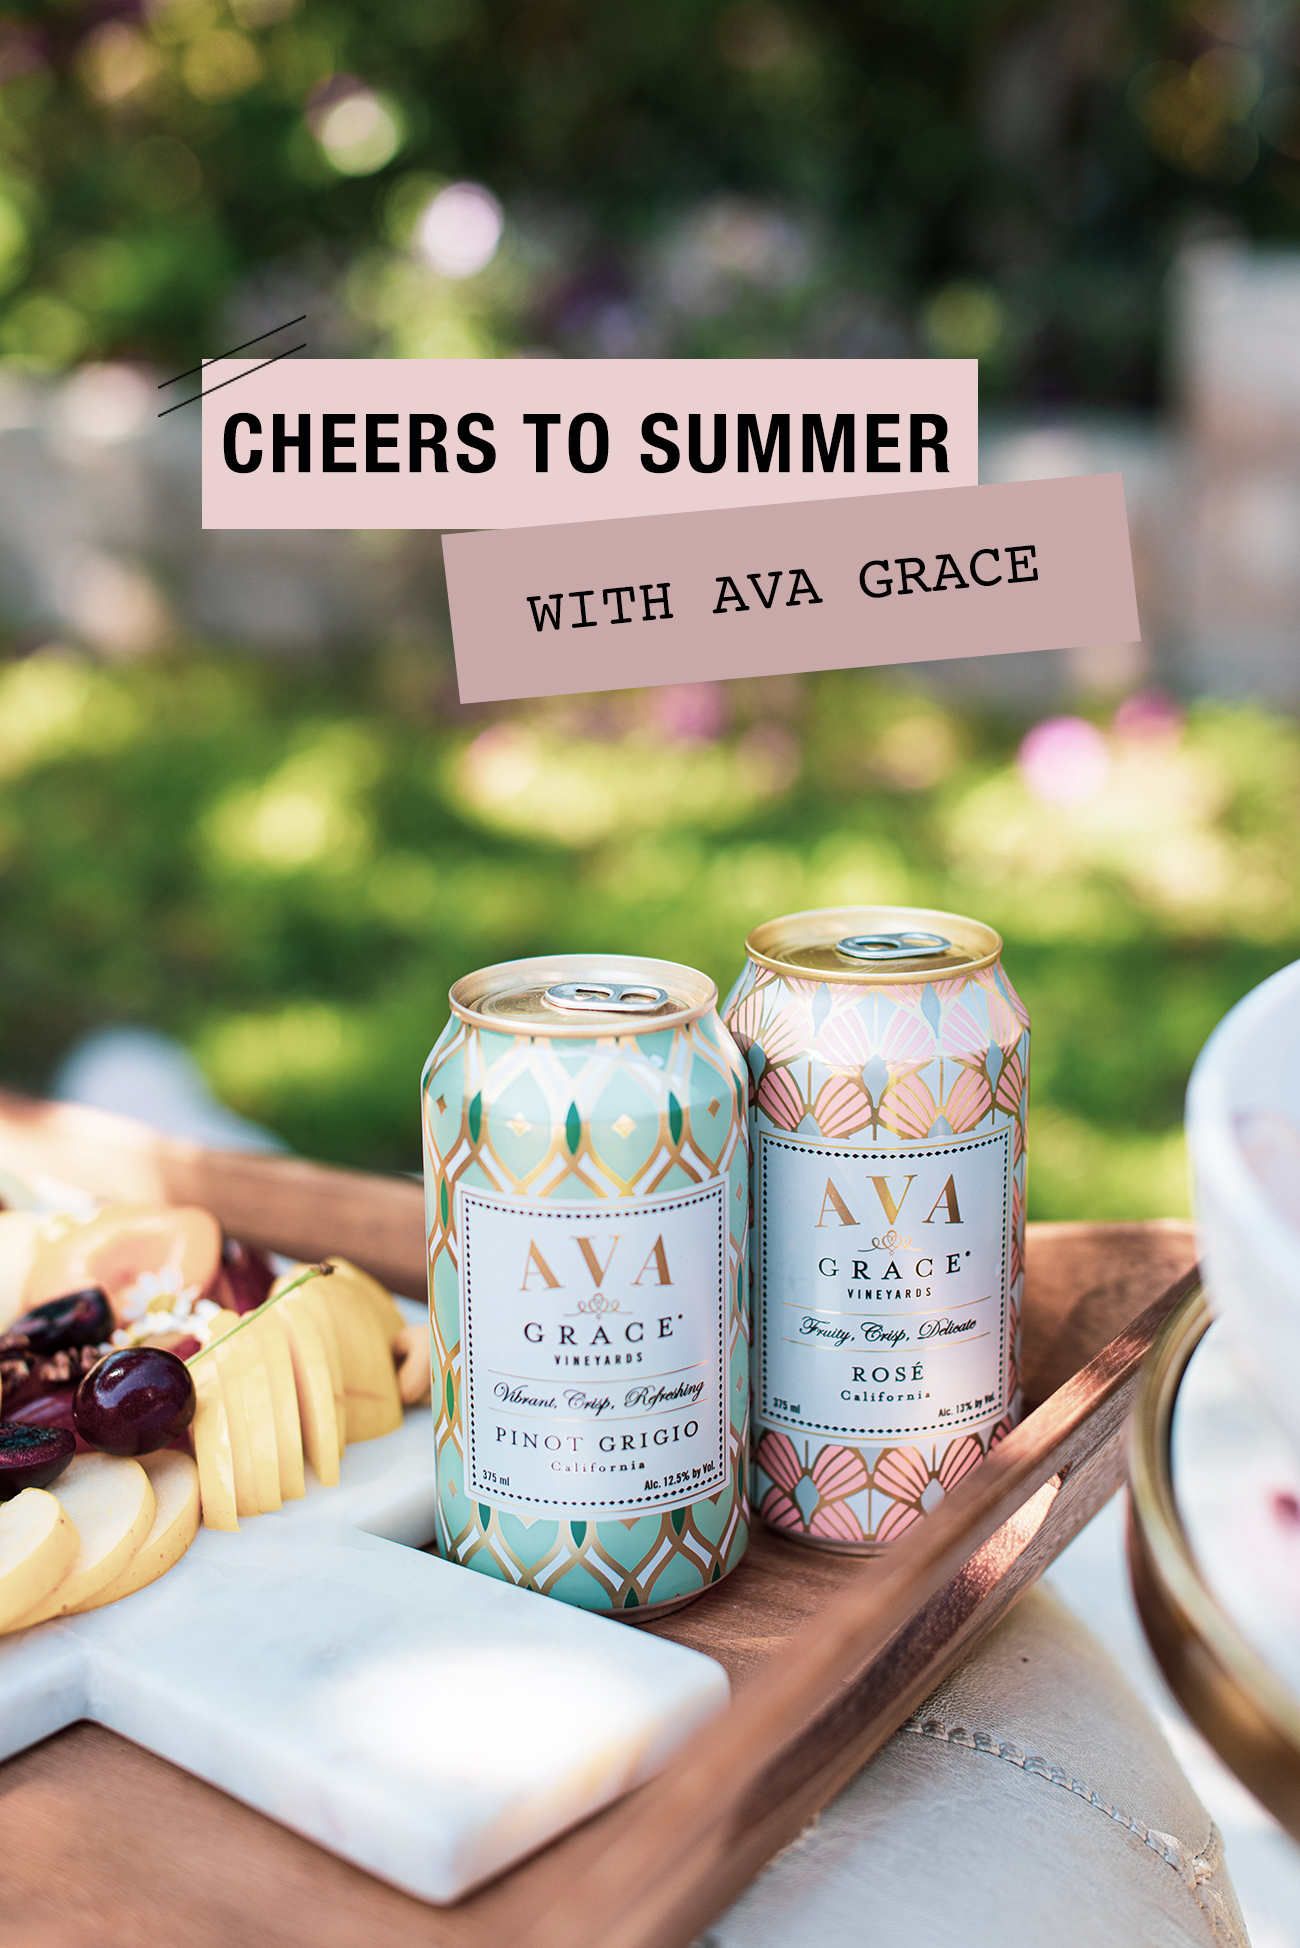 AVA Grace Wine Cans for Summer Entertaining